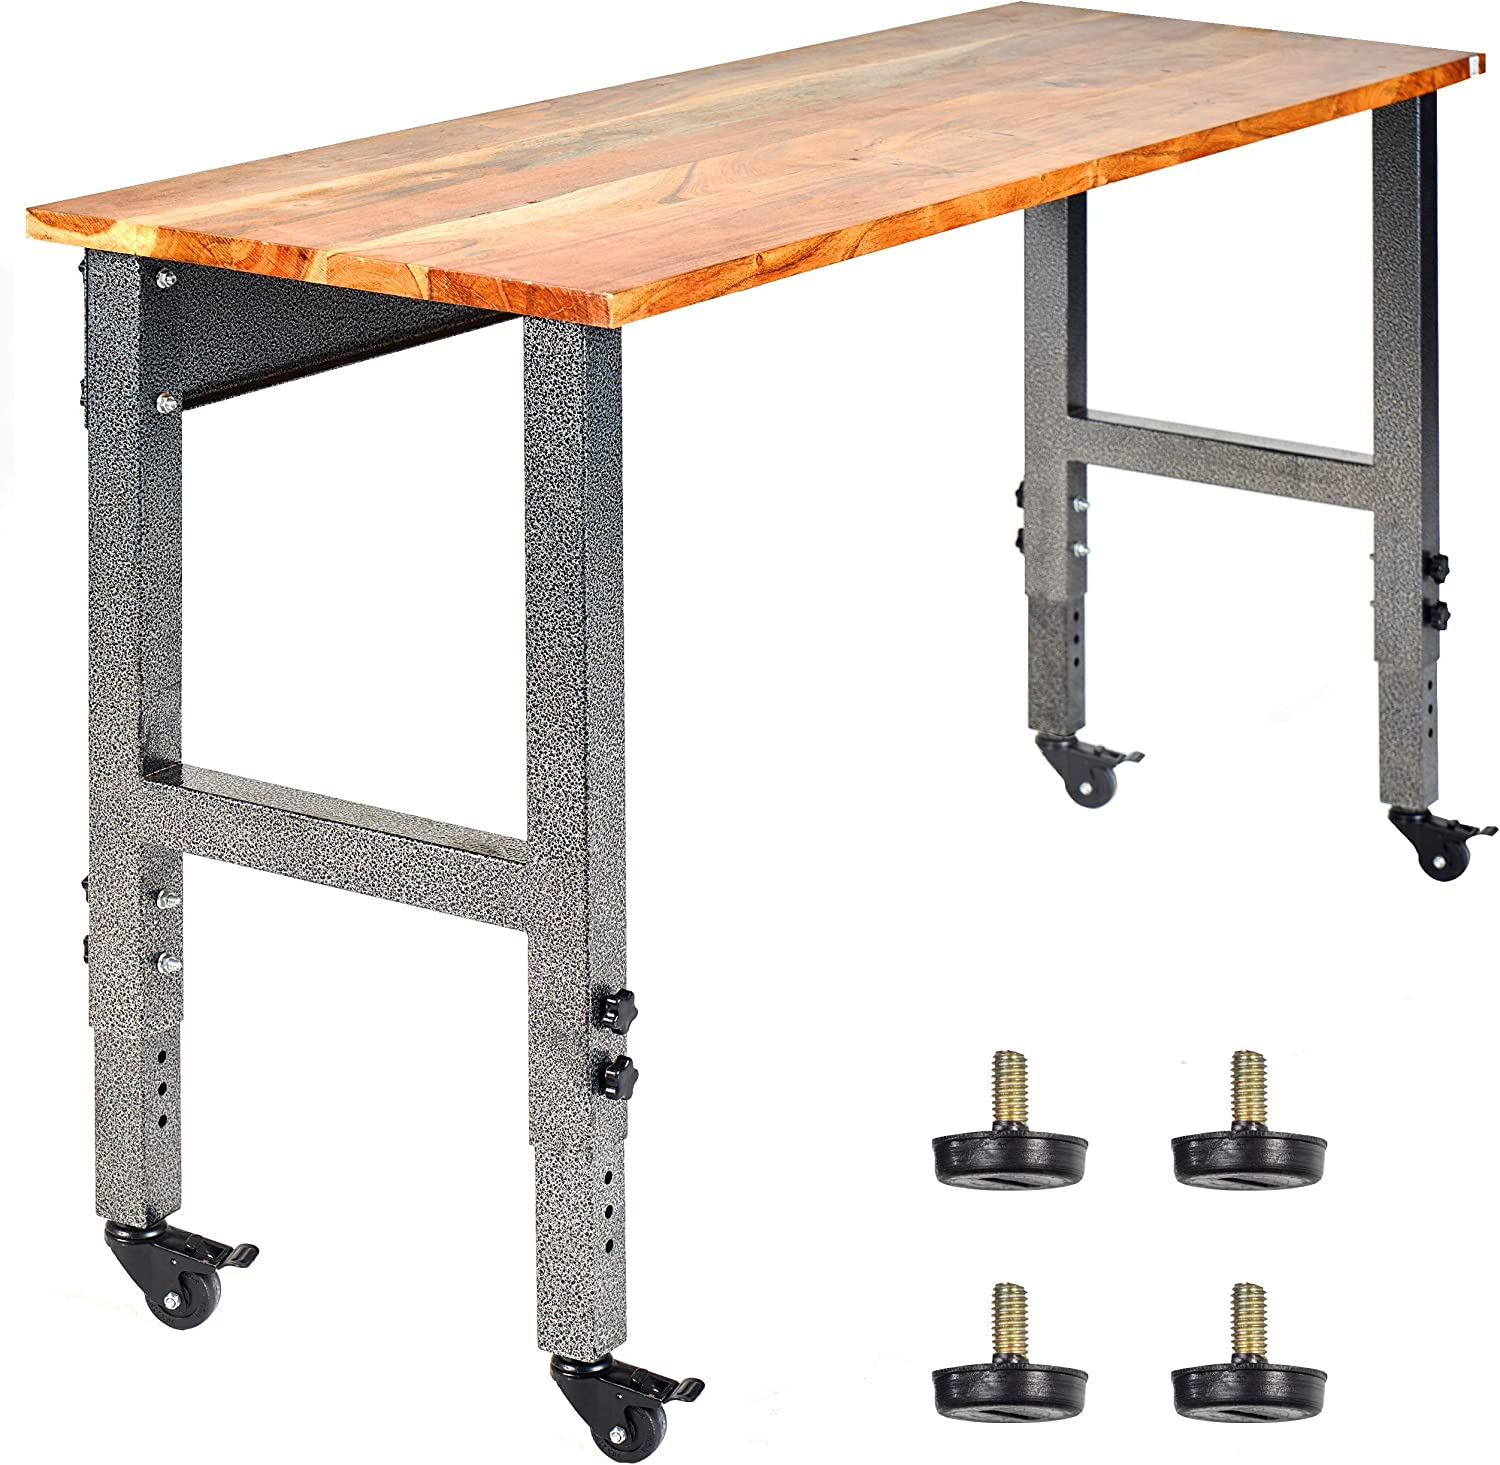 Mobile Garage Workbench W Casters 48 Acacia Hardwood Top Adjustable Height Legs Great Office Workshop Tool Bench Home Improvement